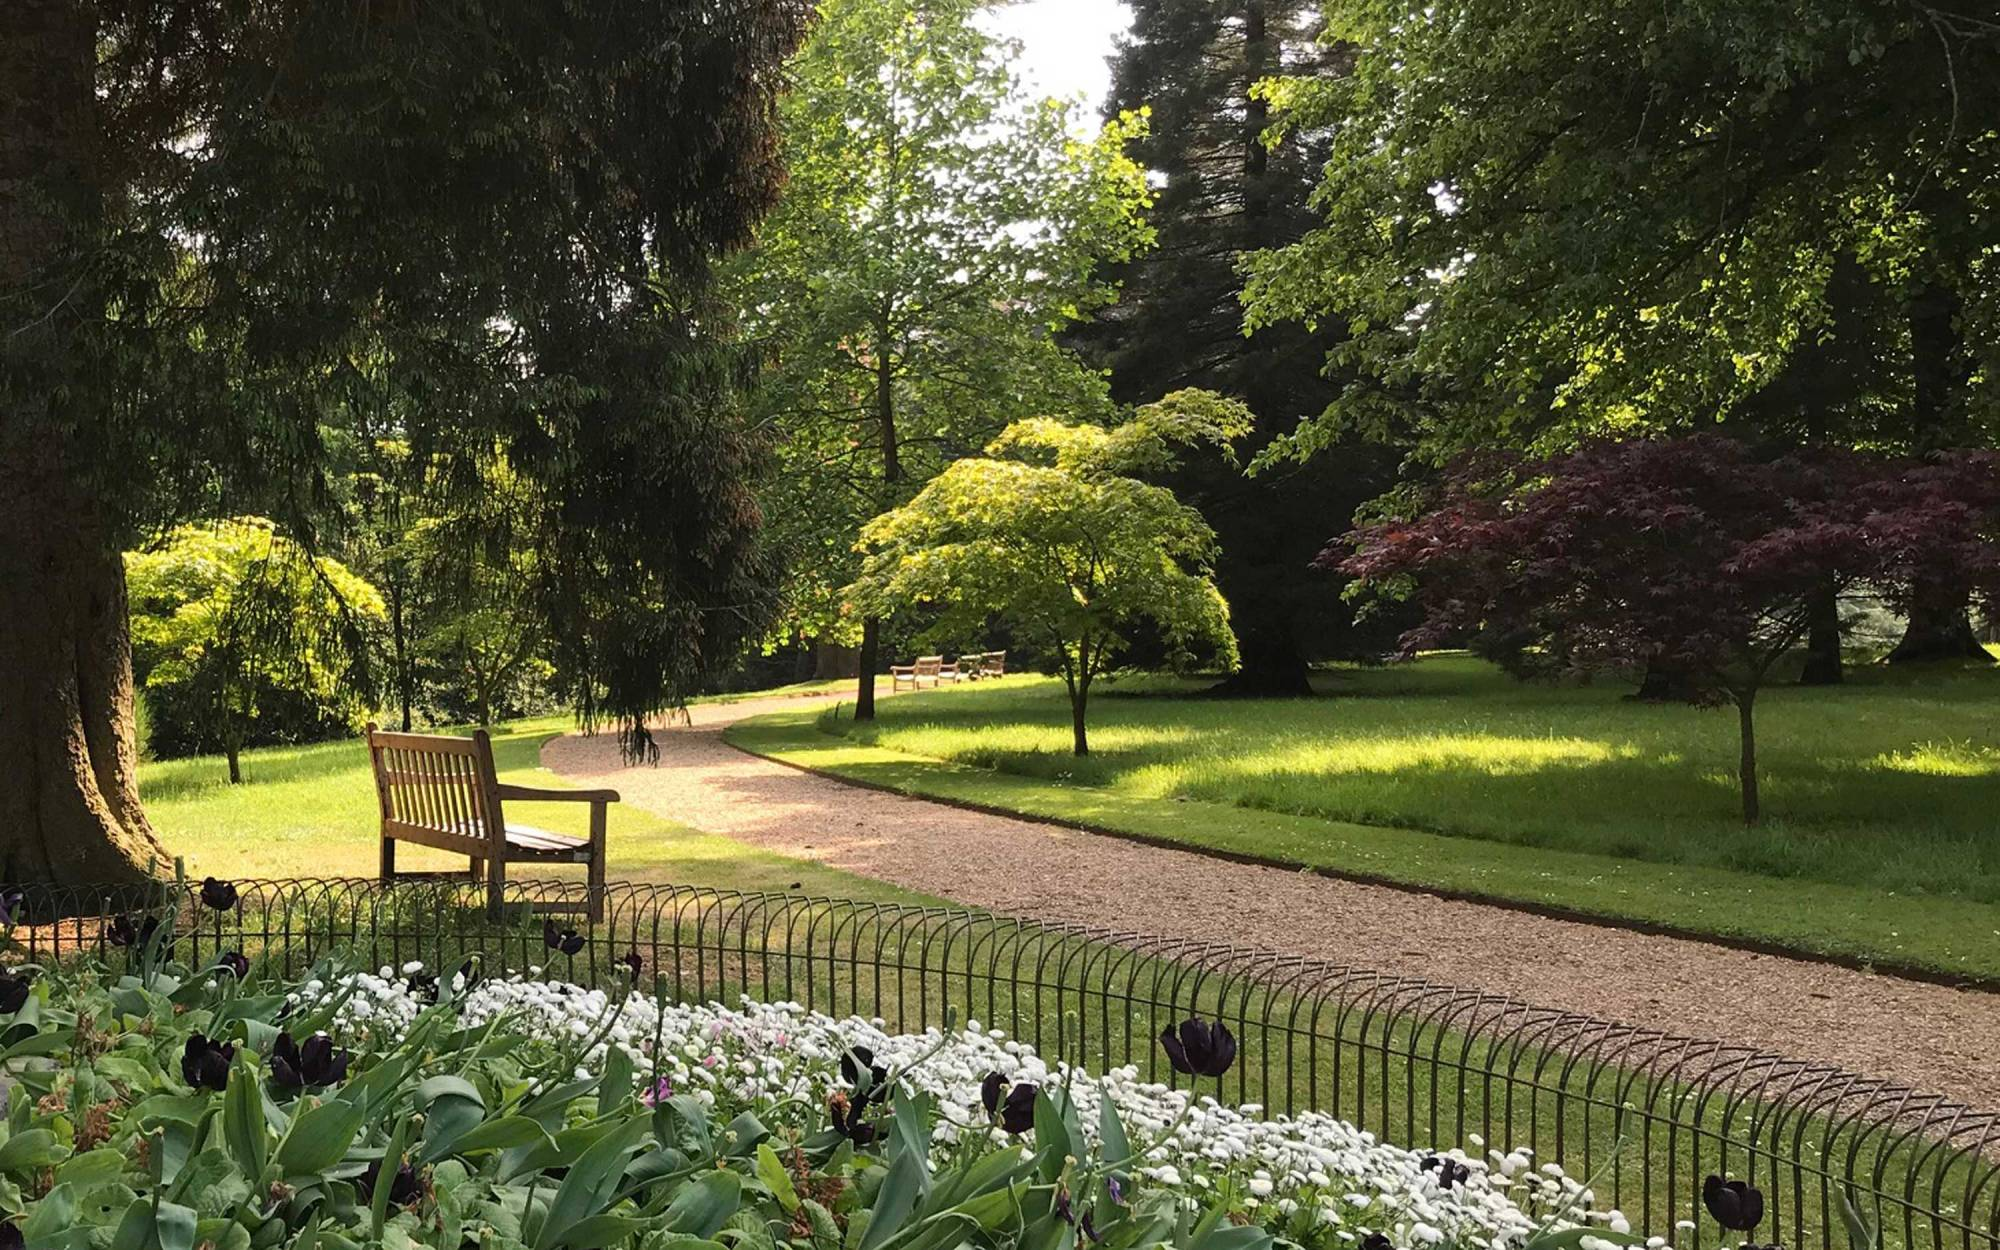 View of half moon path with trees and a bench